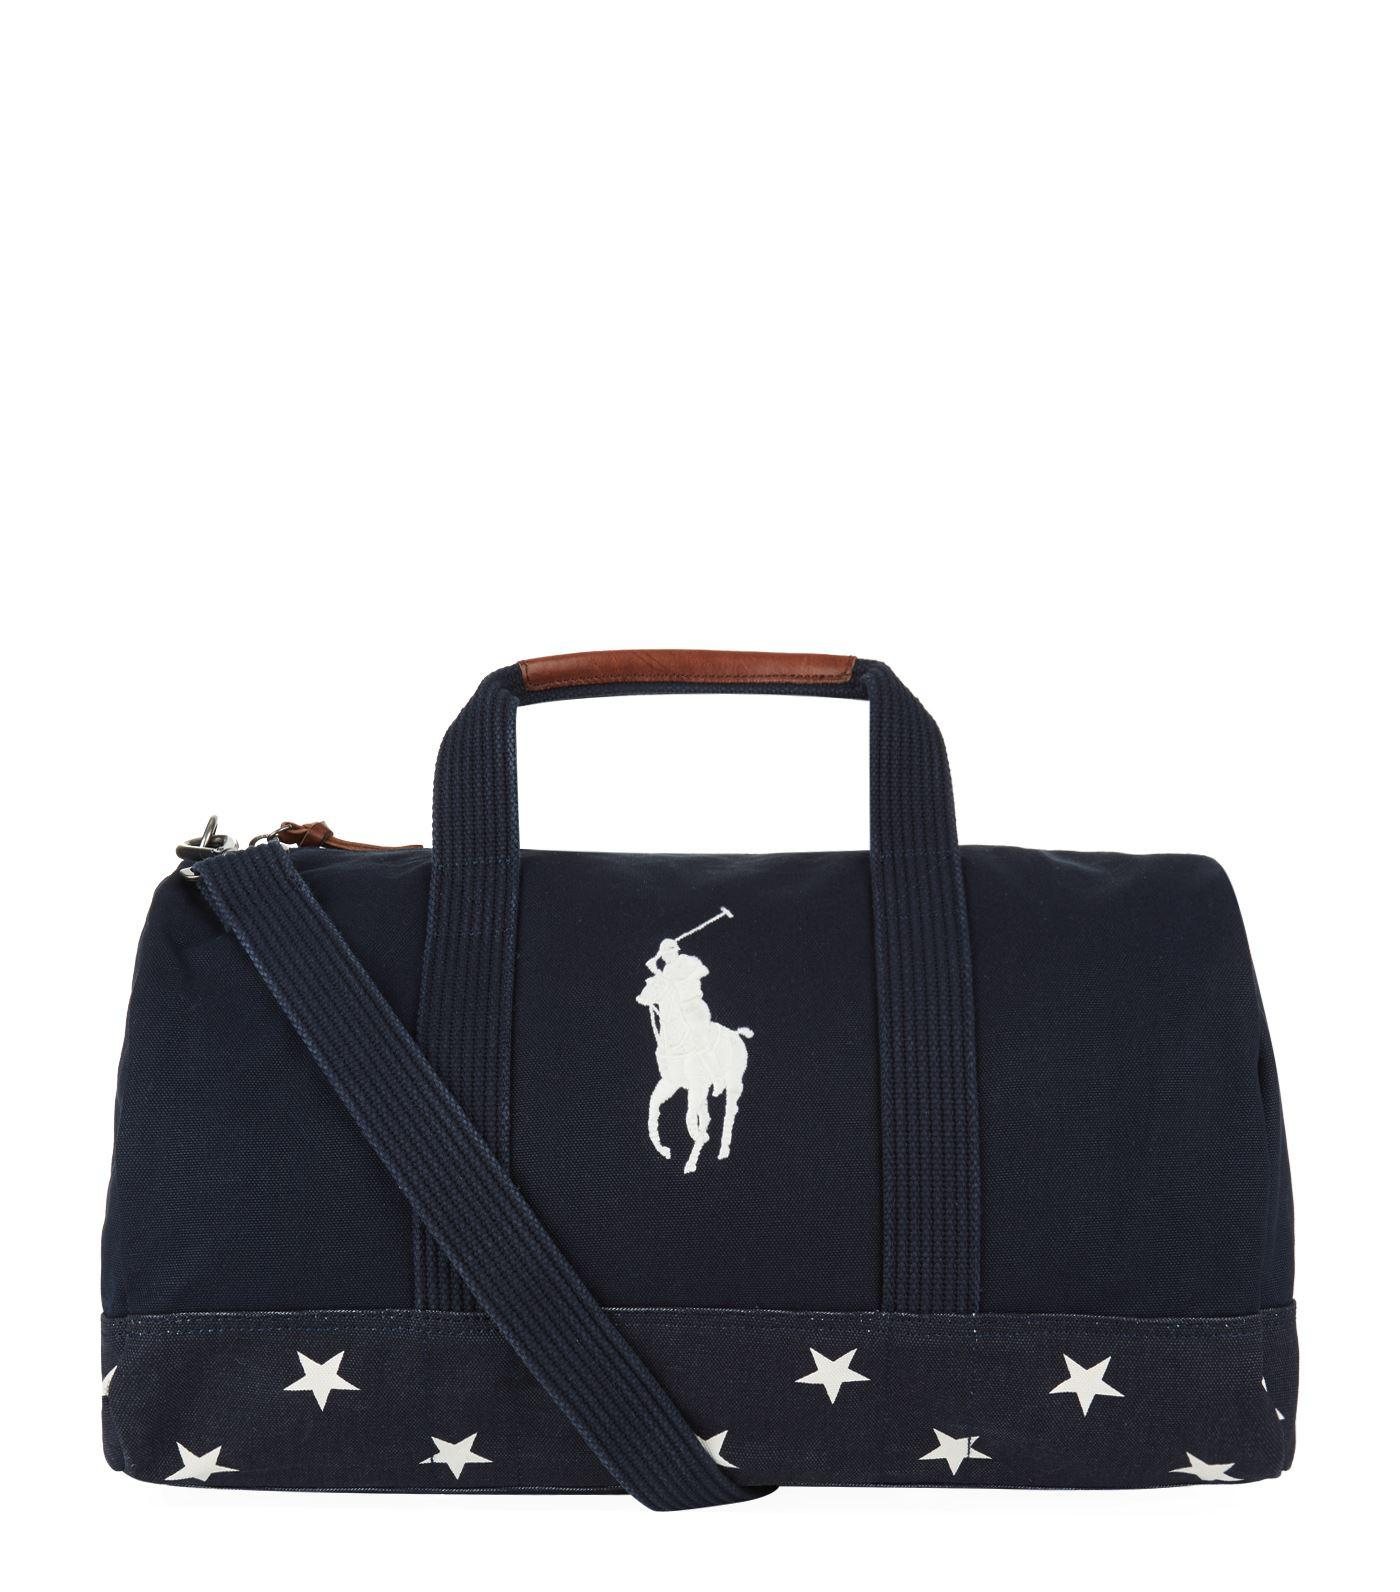 e386a4da0ca3 Lyst - Polo Ralph Lauren Canvas Star Bag in Blue for Men